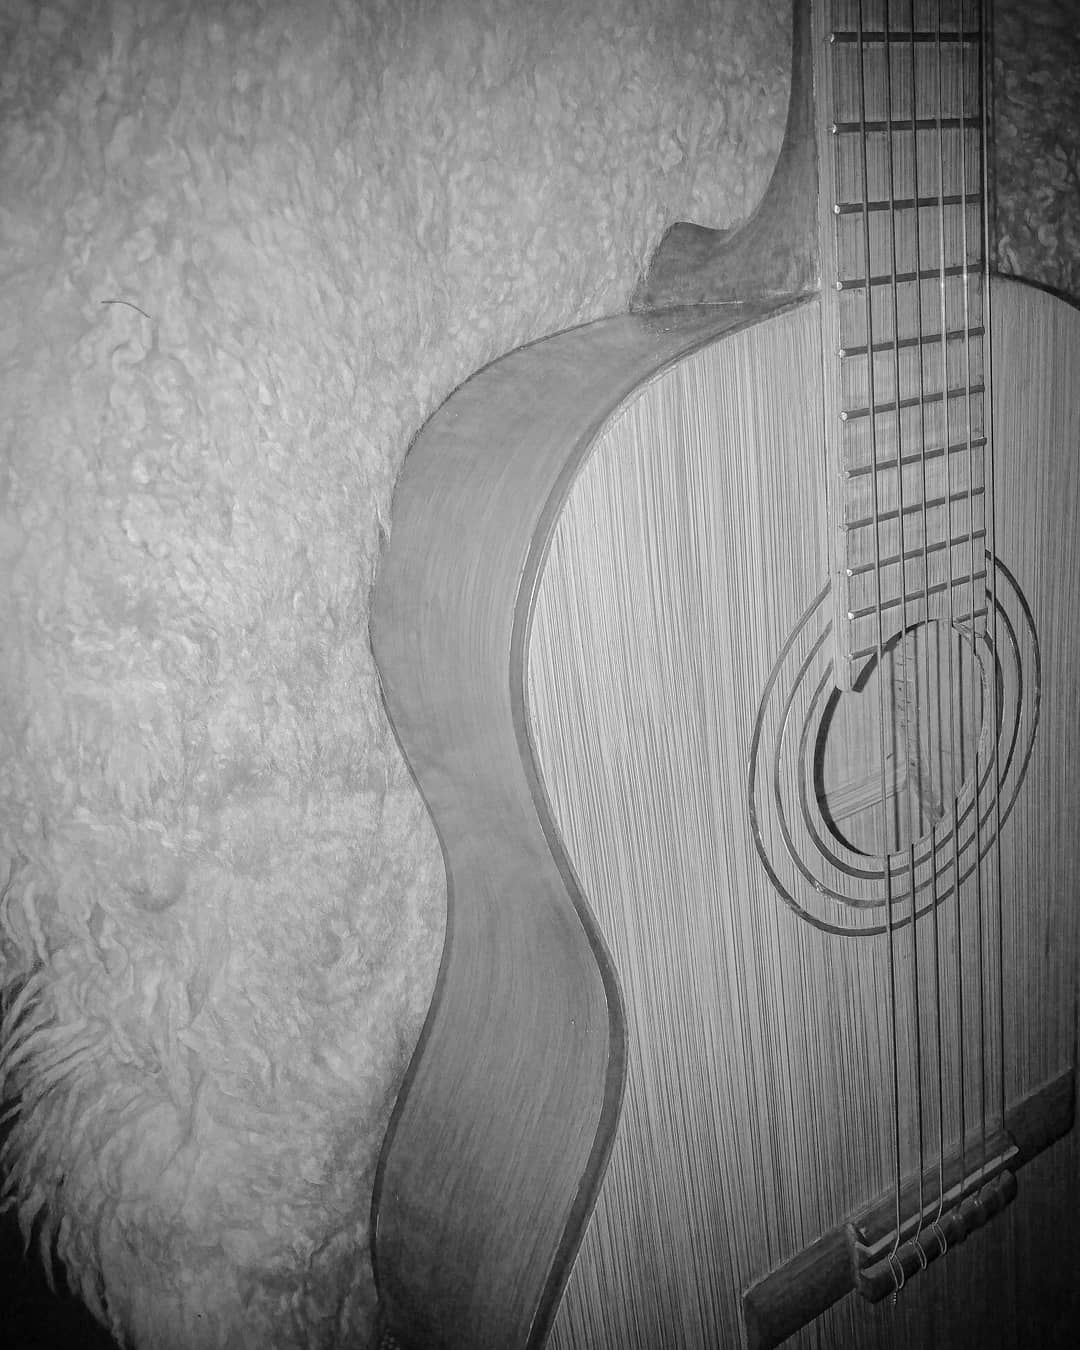 #BambooGuitar #instaphotos #nature #landscapephotography #landscape #art #artwork #instapic #river #earth #globe #leaf #fairy #ルナリ #ことば #steam #exhausted #earthescope #woodwardacademy #lightroom #adobe #doodle #draw #drawing #milkyway #月 #amor #chromatic #monochrome #woodwood